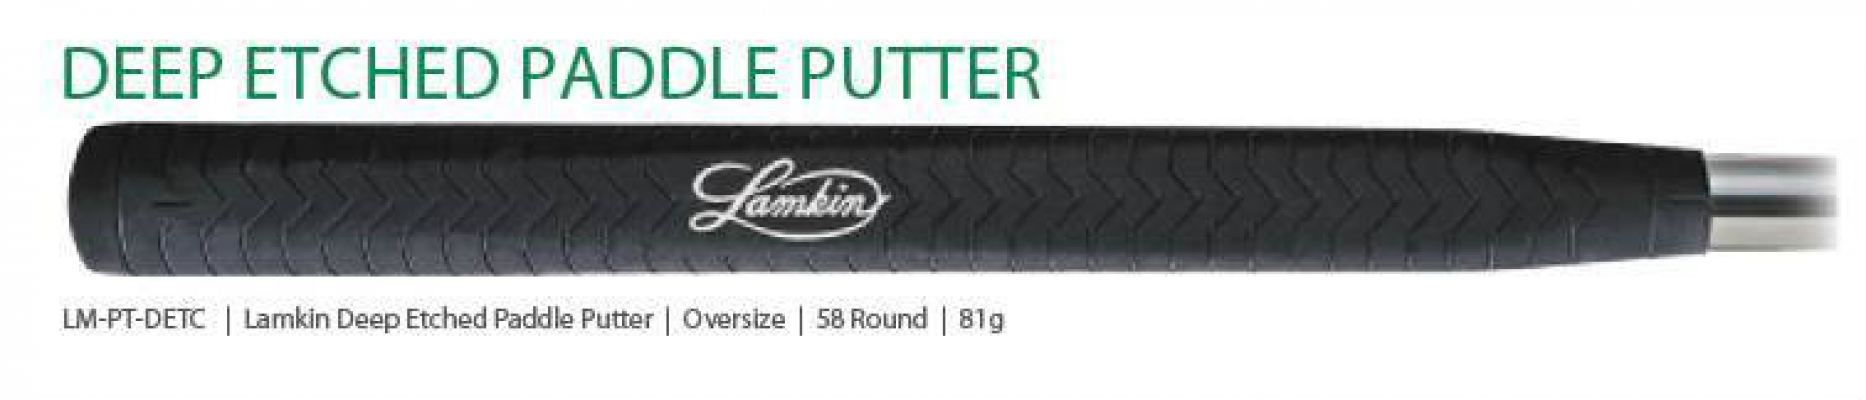 Lamkin Deep Etched Paddle Putter Grips